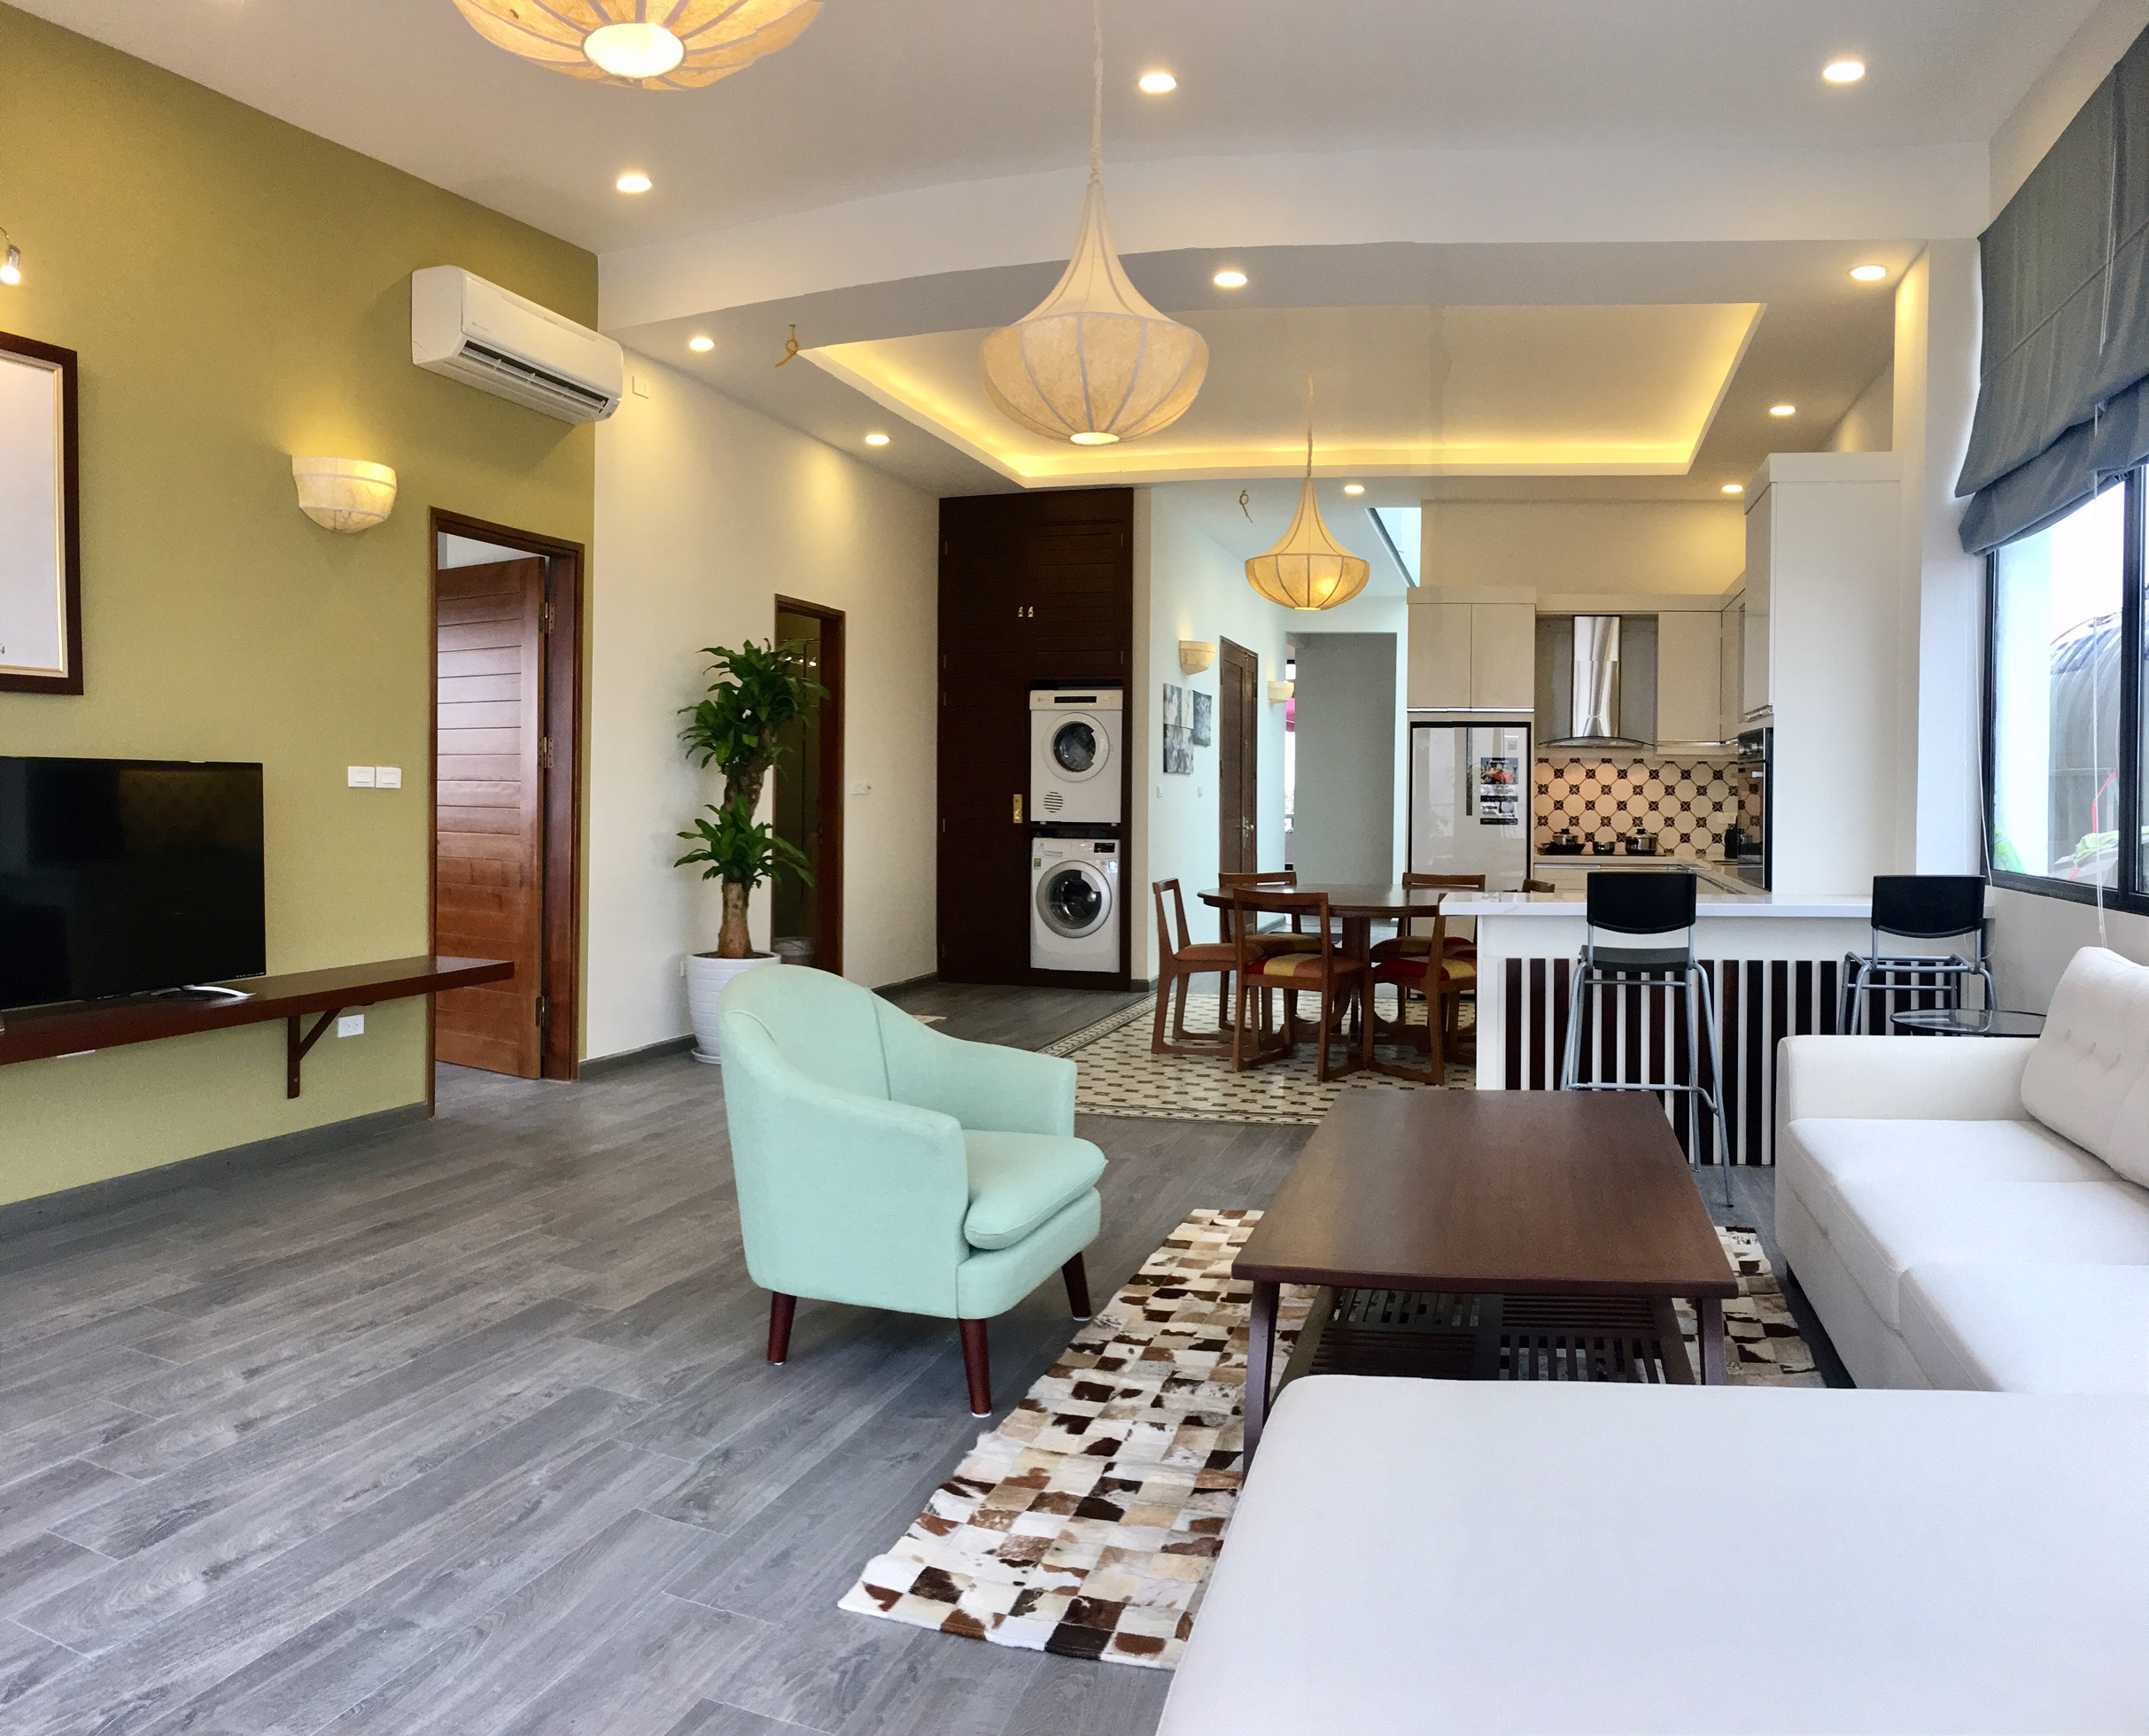 Nice apartment for rent in To Ngoc Van street, Quang An ward, Tay Ho district, Hanoi